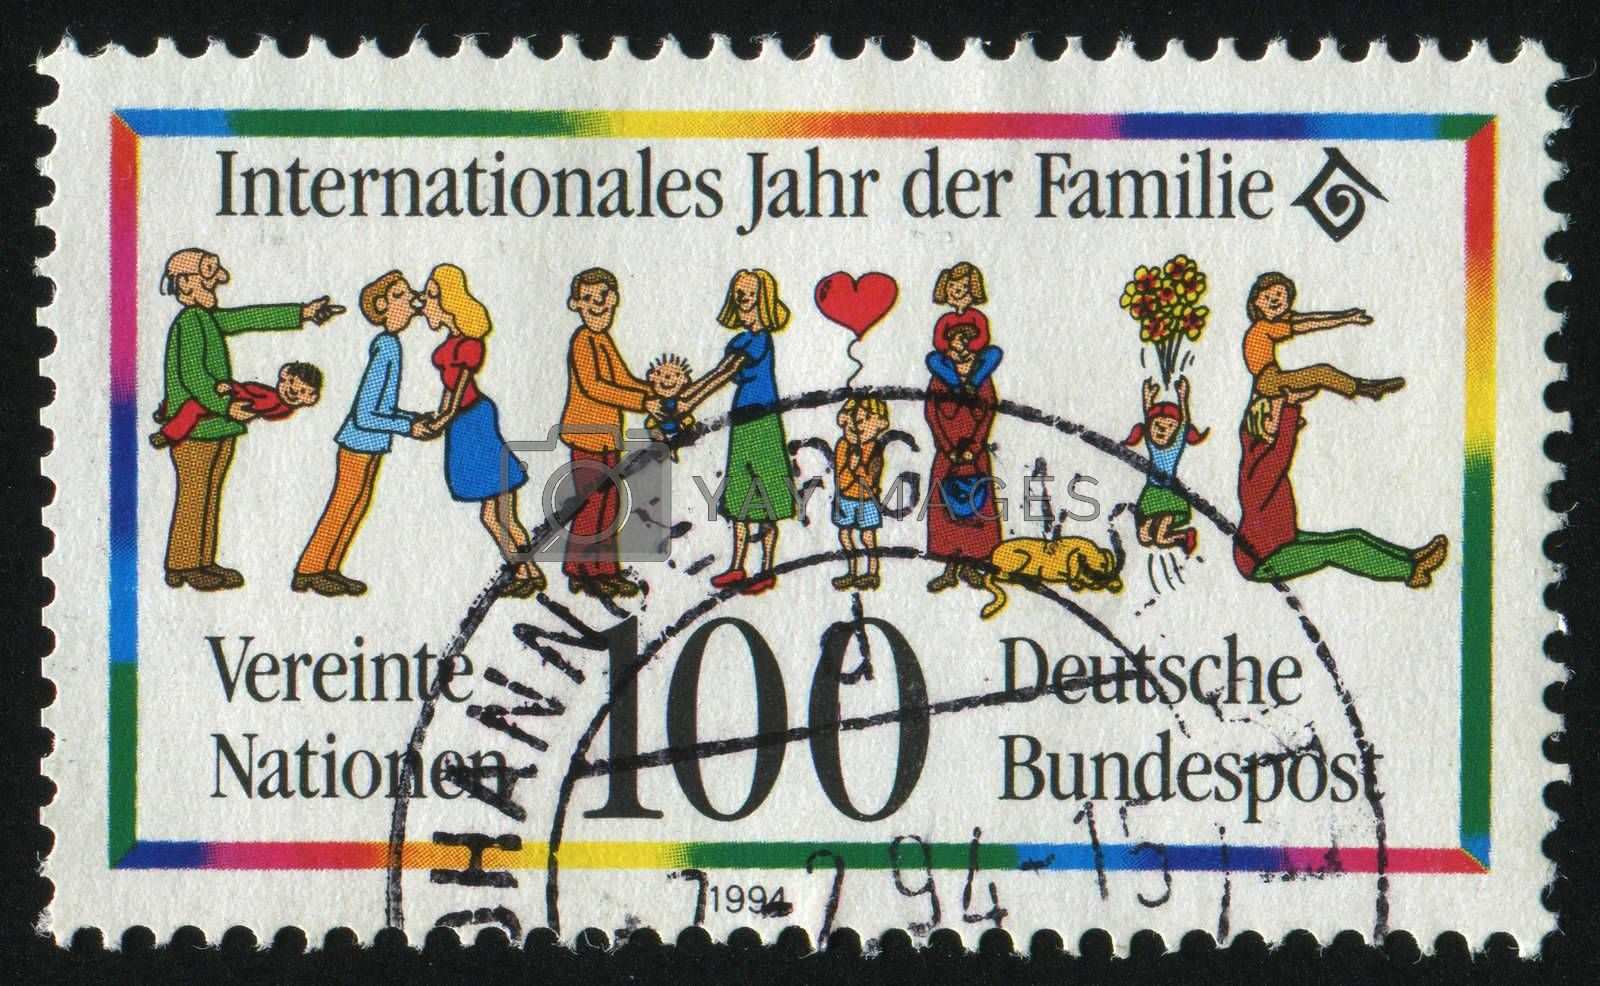 GERMANY- CIRCA 1994: stamp printed by Germany, shows Year of the Family, circa 1994.